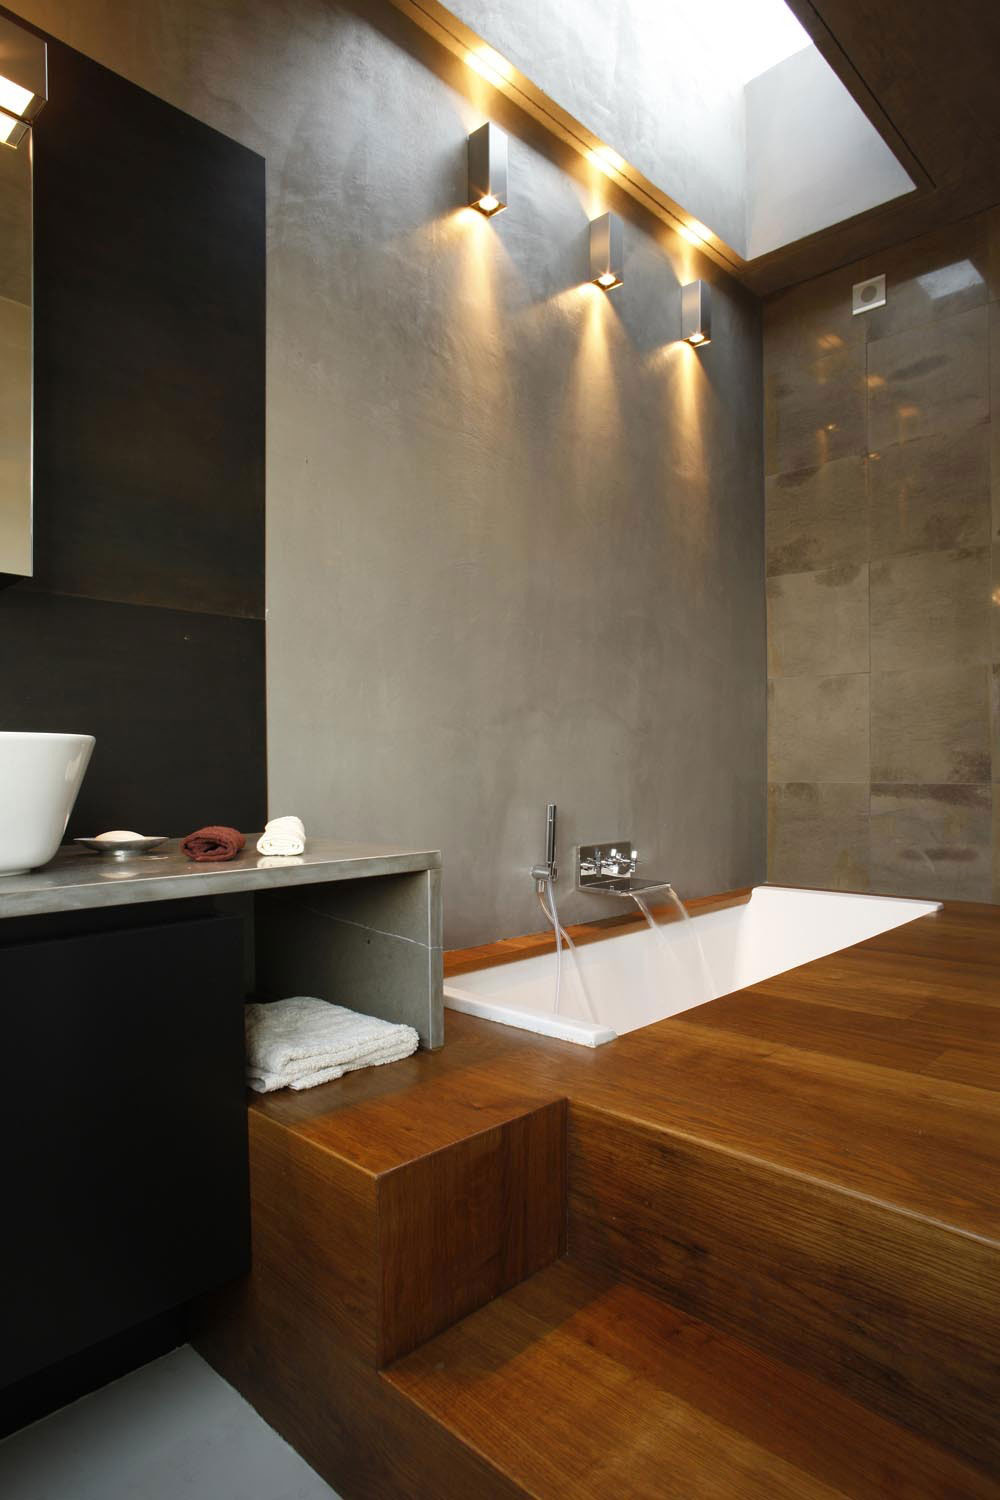 Inspiring Designs Highlighted By Sunken Tubs